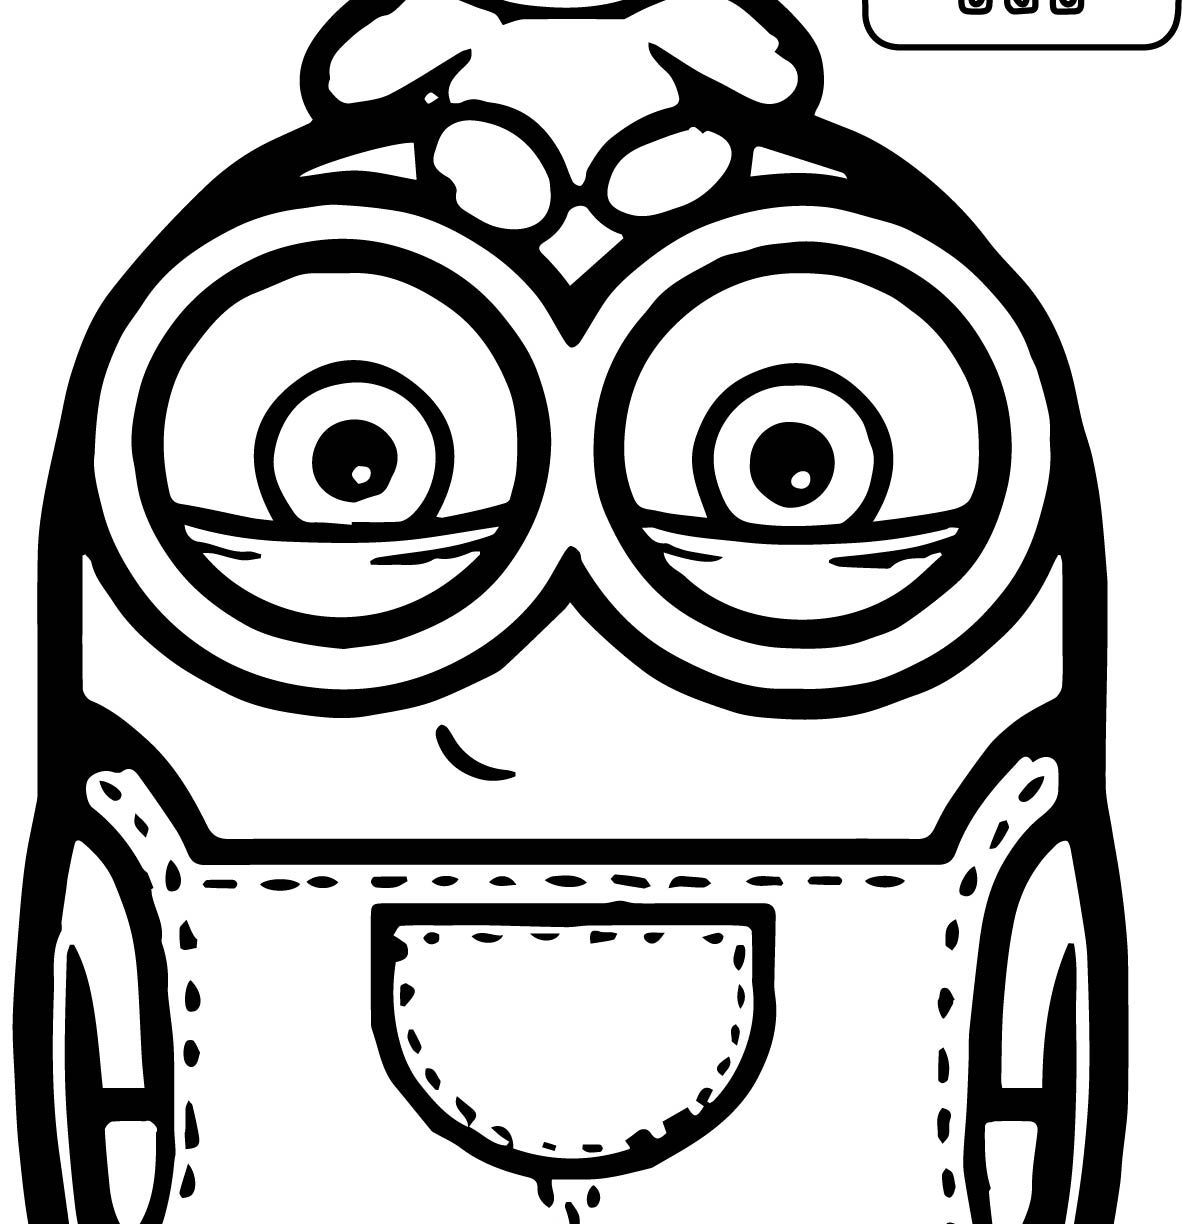 1182x1224 Minions Coloring Page Pages Free Download Cartoon Minion Printable